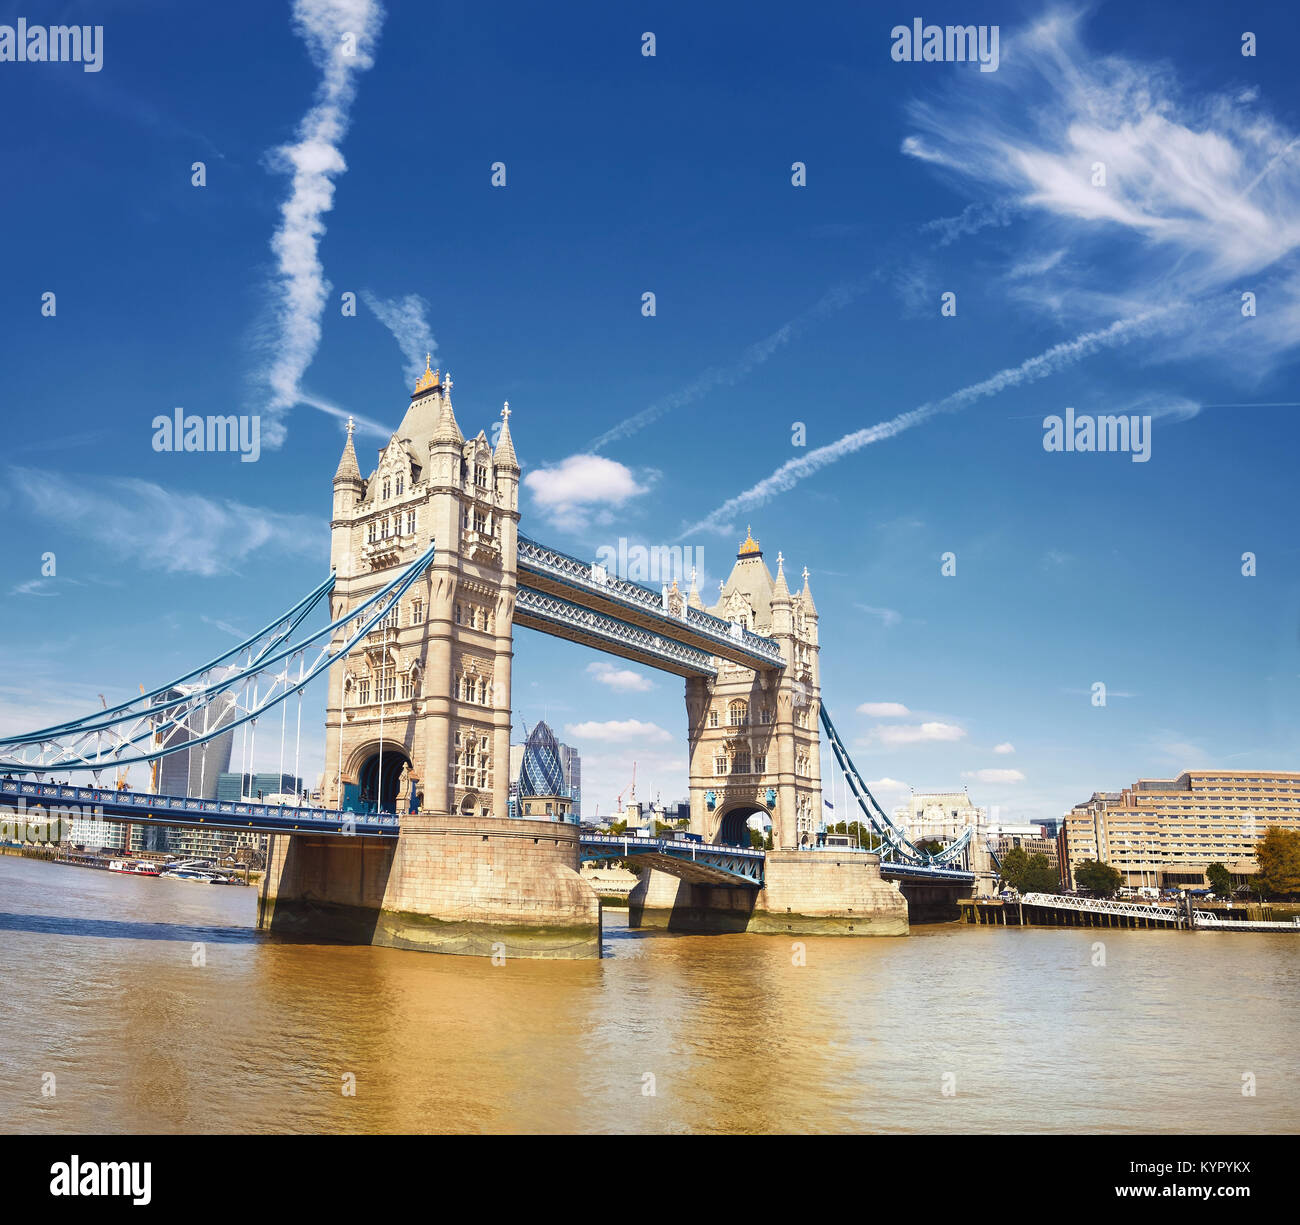 Tower Bridge on a bright sunny day in London, England, UK. Panoramic image. - Stock Image